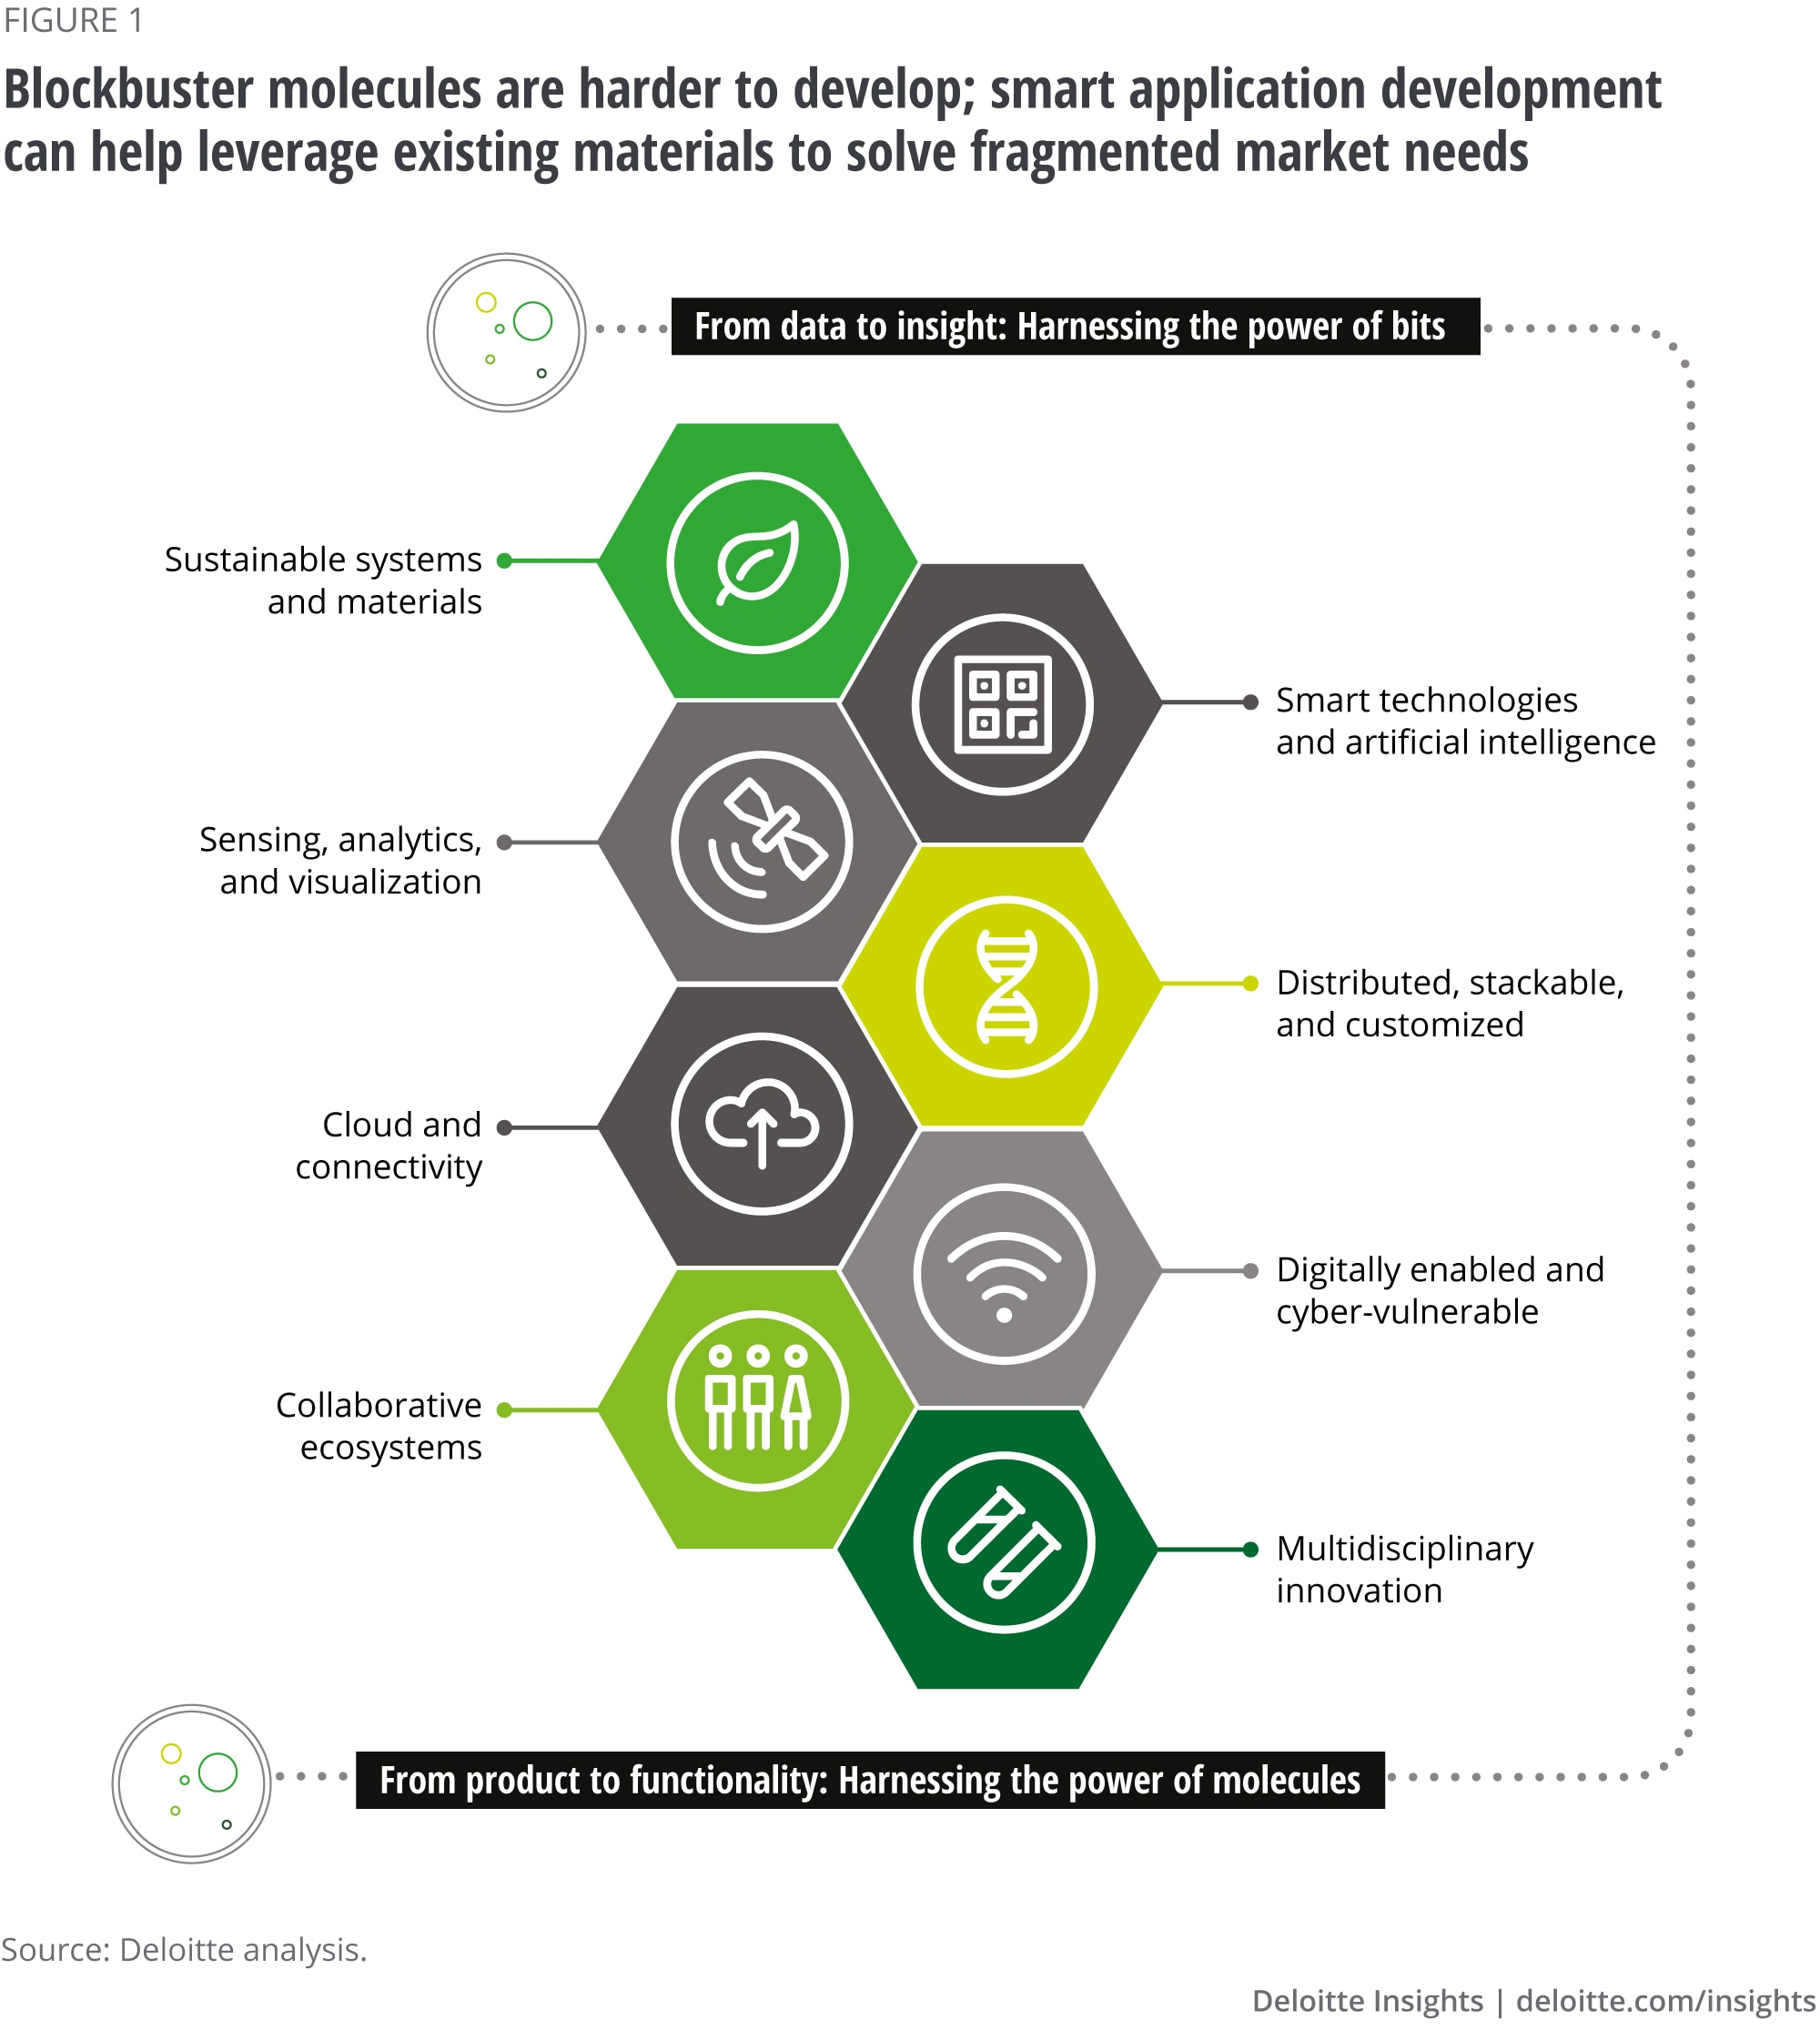 As blockbuster molecules are harder to develop, smart application development helps leverage existing materials to solve fragmented market needs